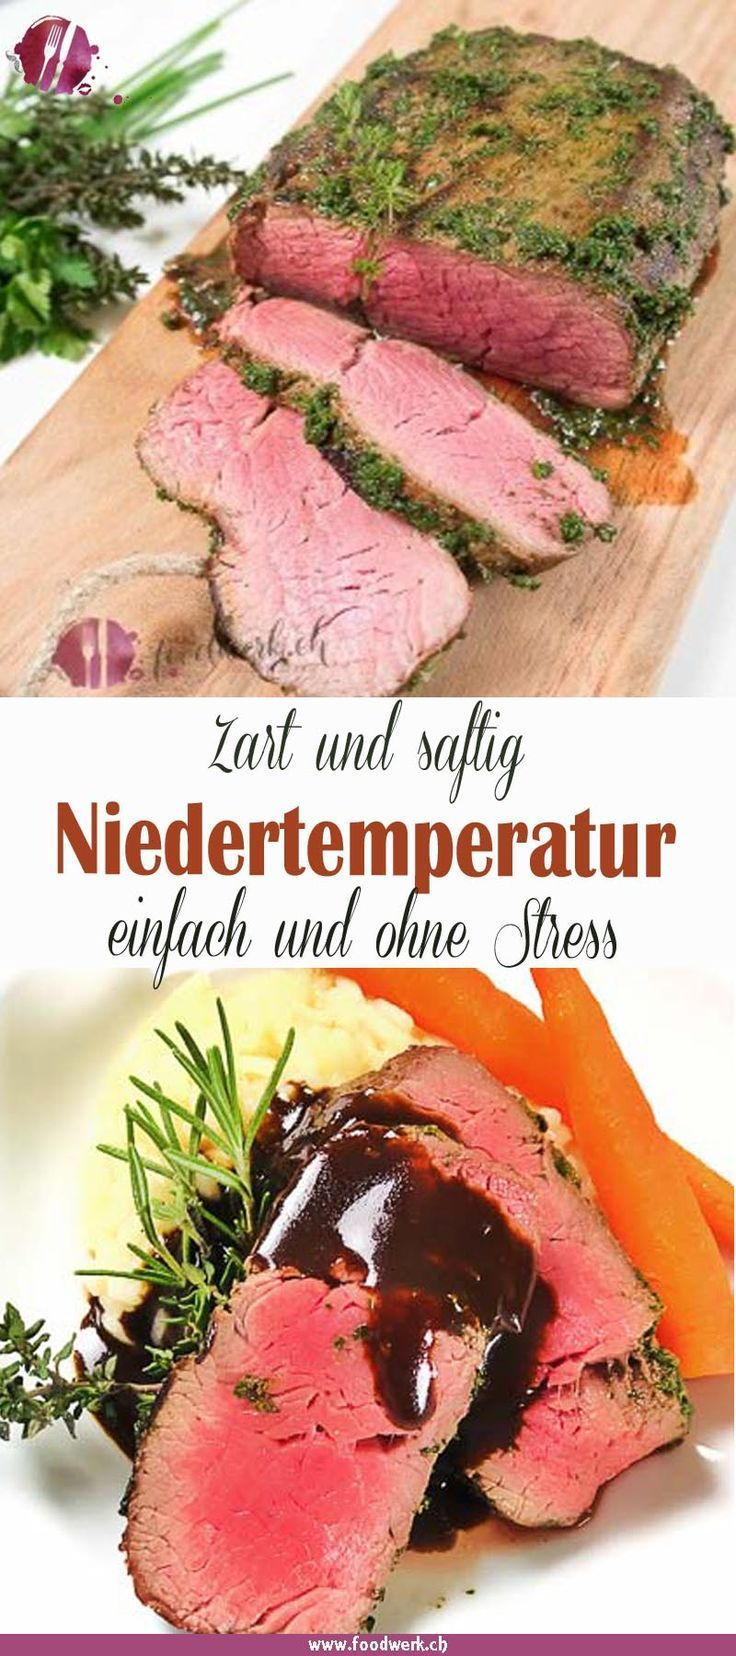 Photo of Pink fillet of beef wrapped in herbs with balsamic sauce Food Blog Switzerland   foodwerk.ch